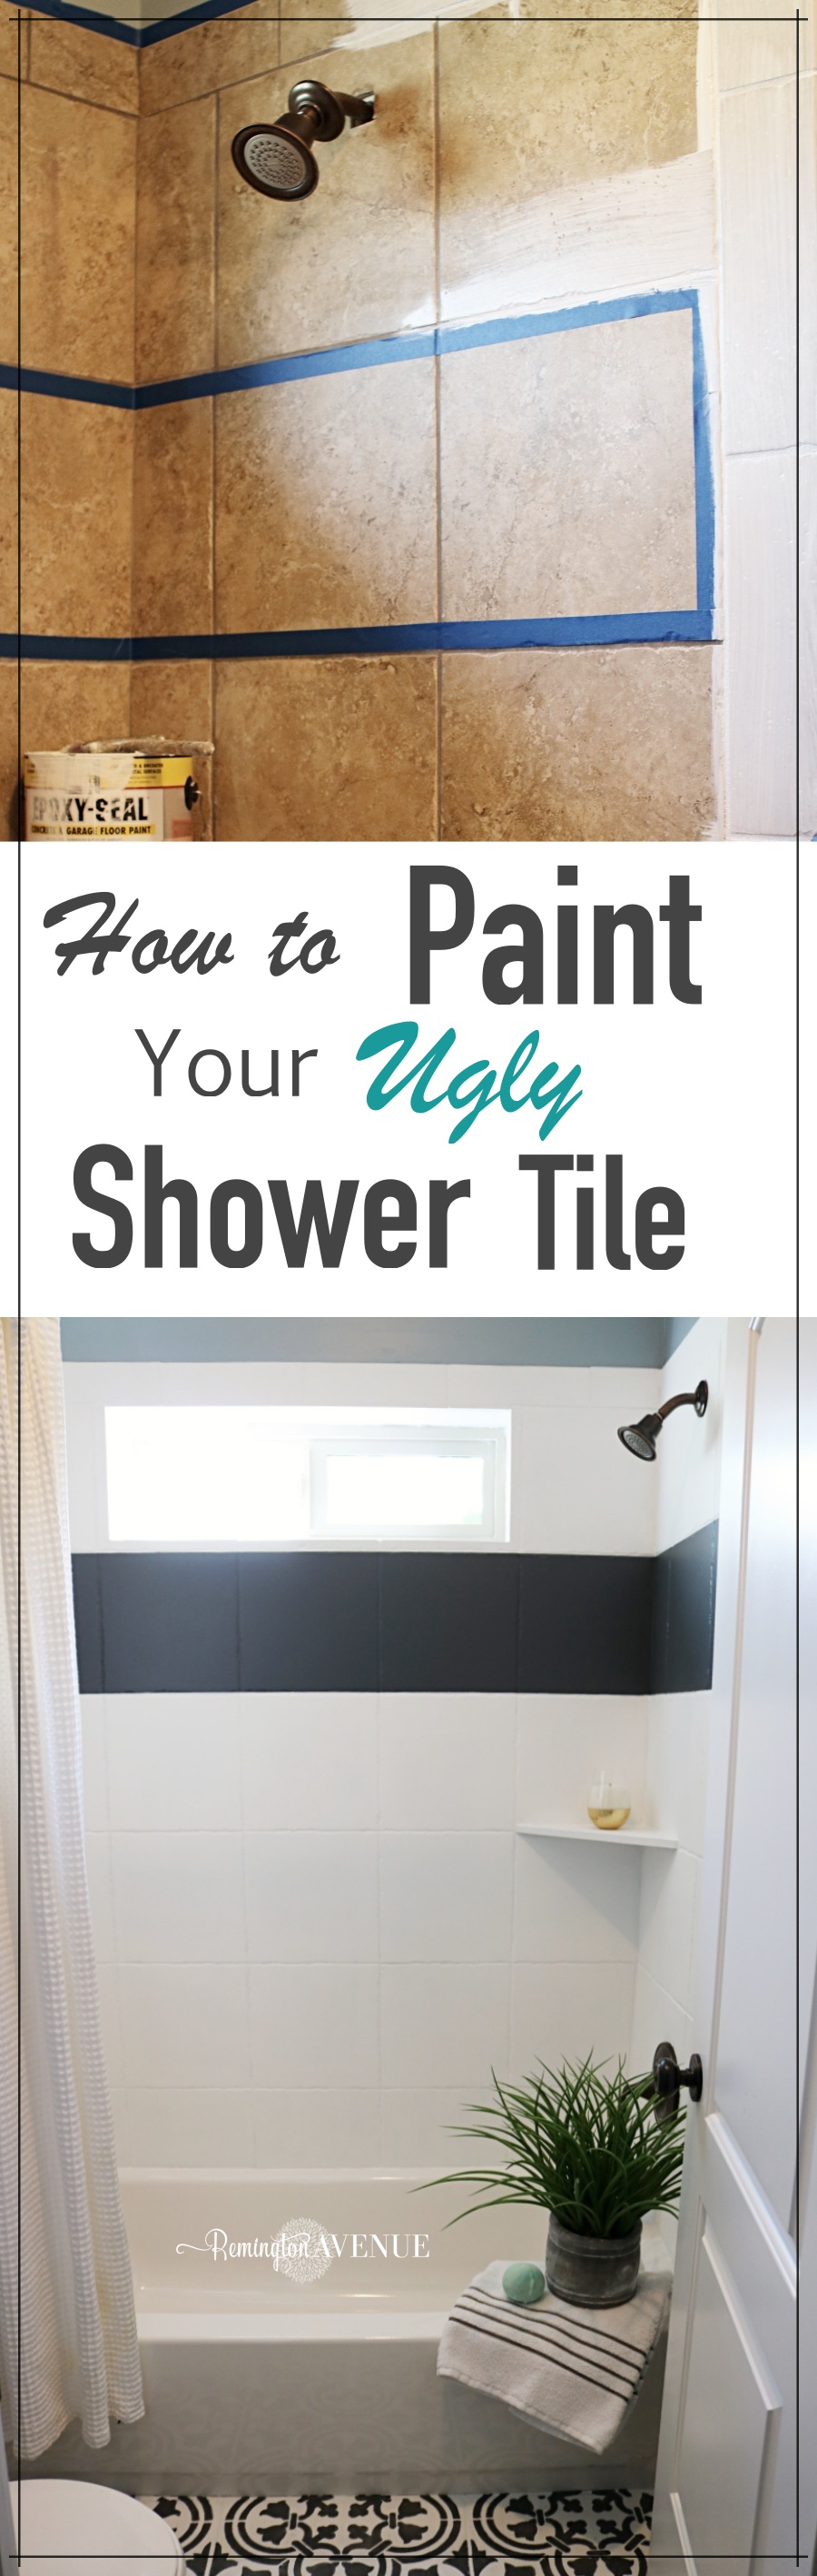 how to paint shower tile remington avenue 23936